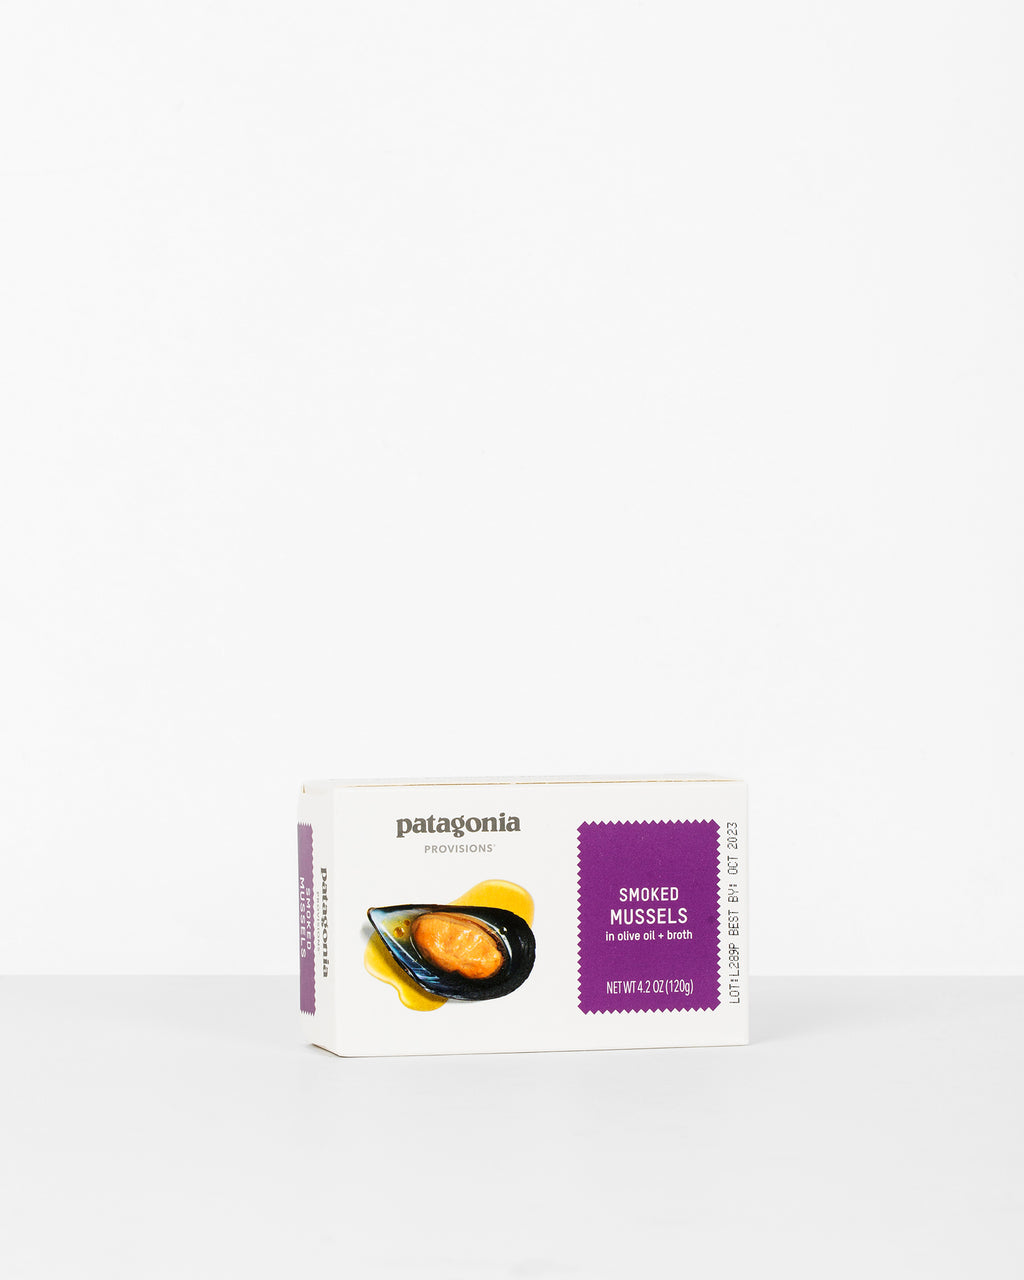 Patagonia - Smoked Mussels